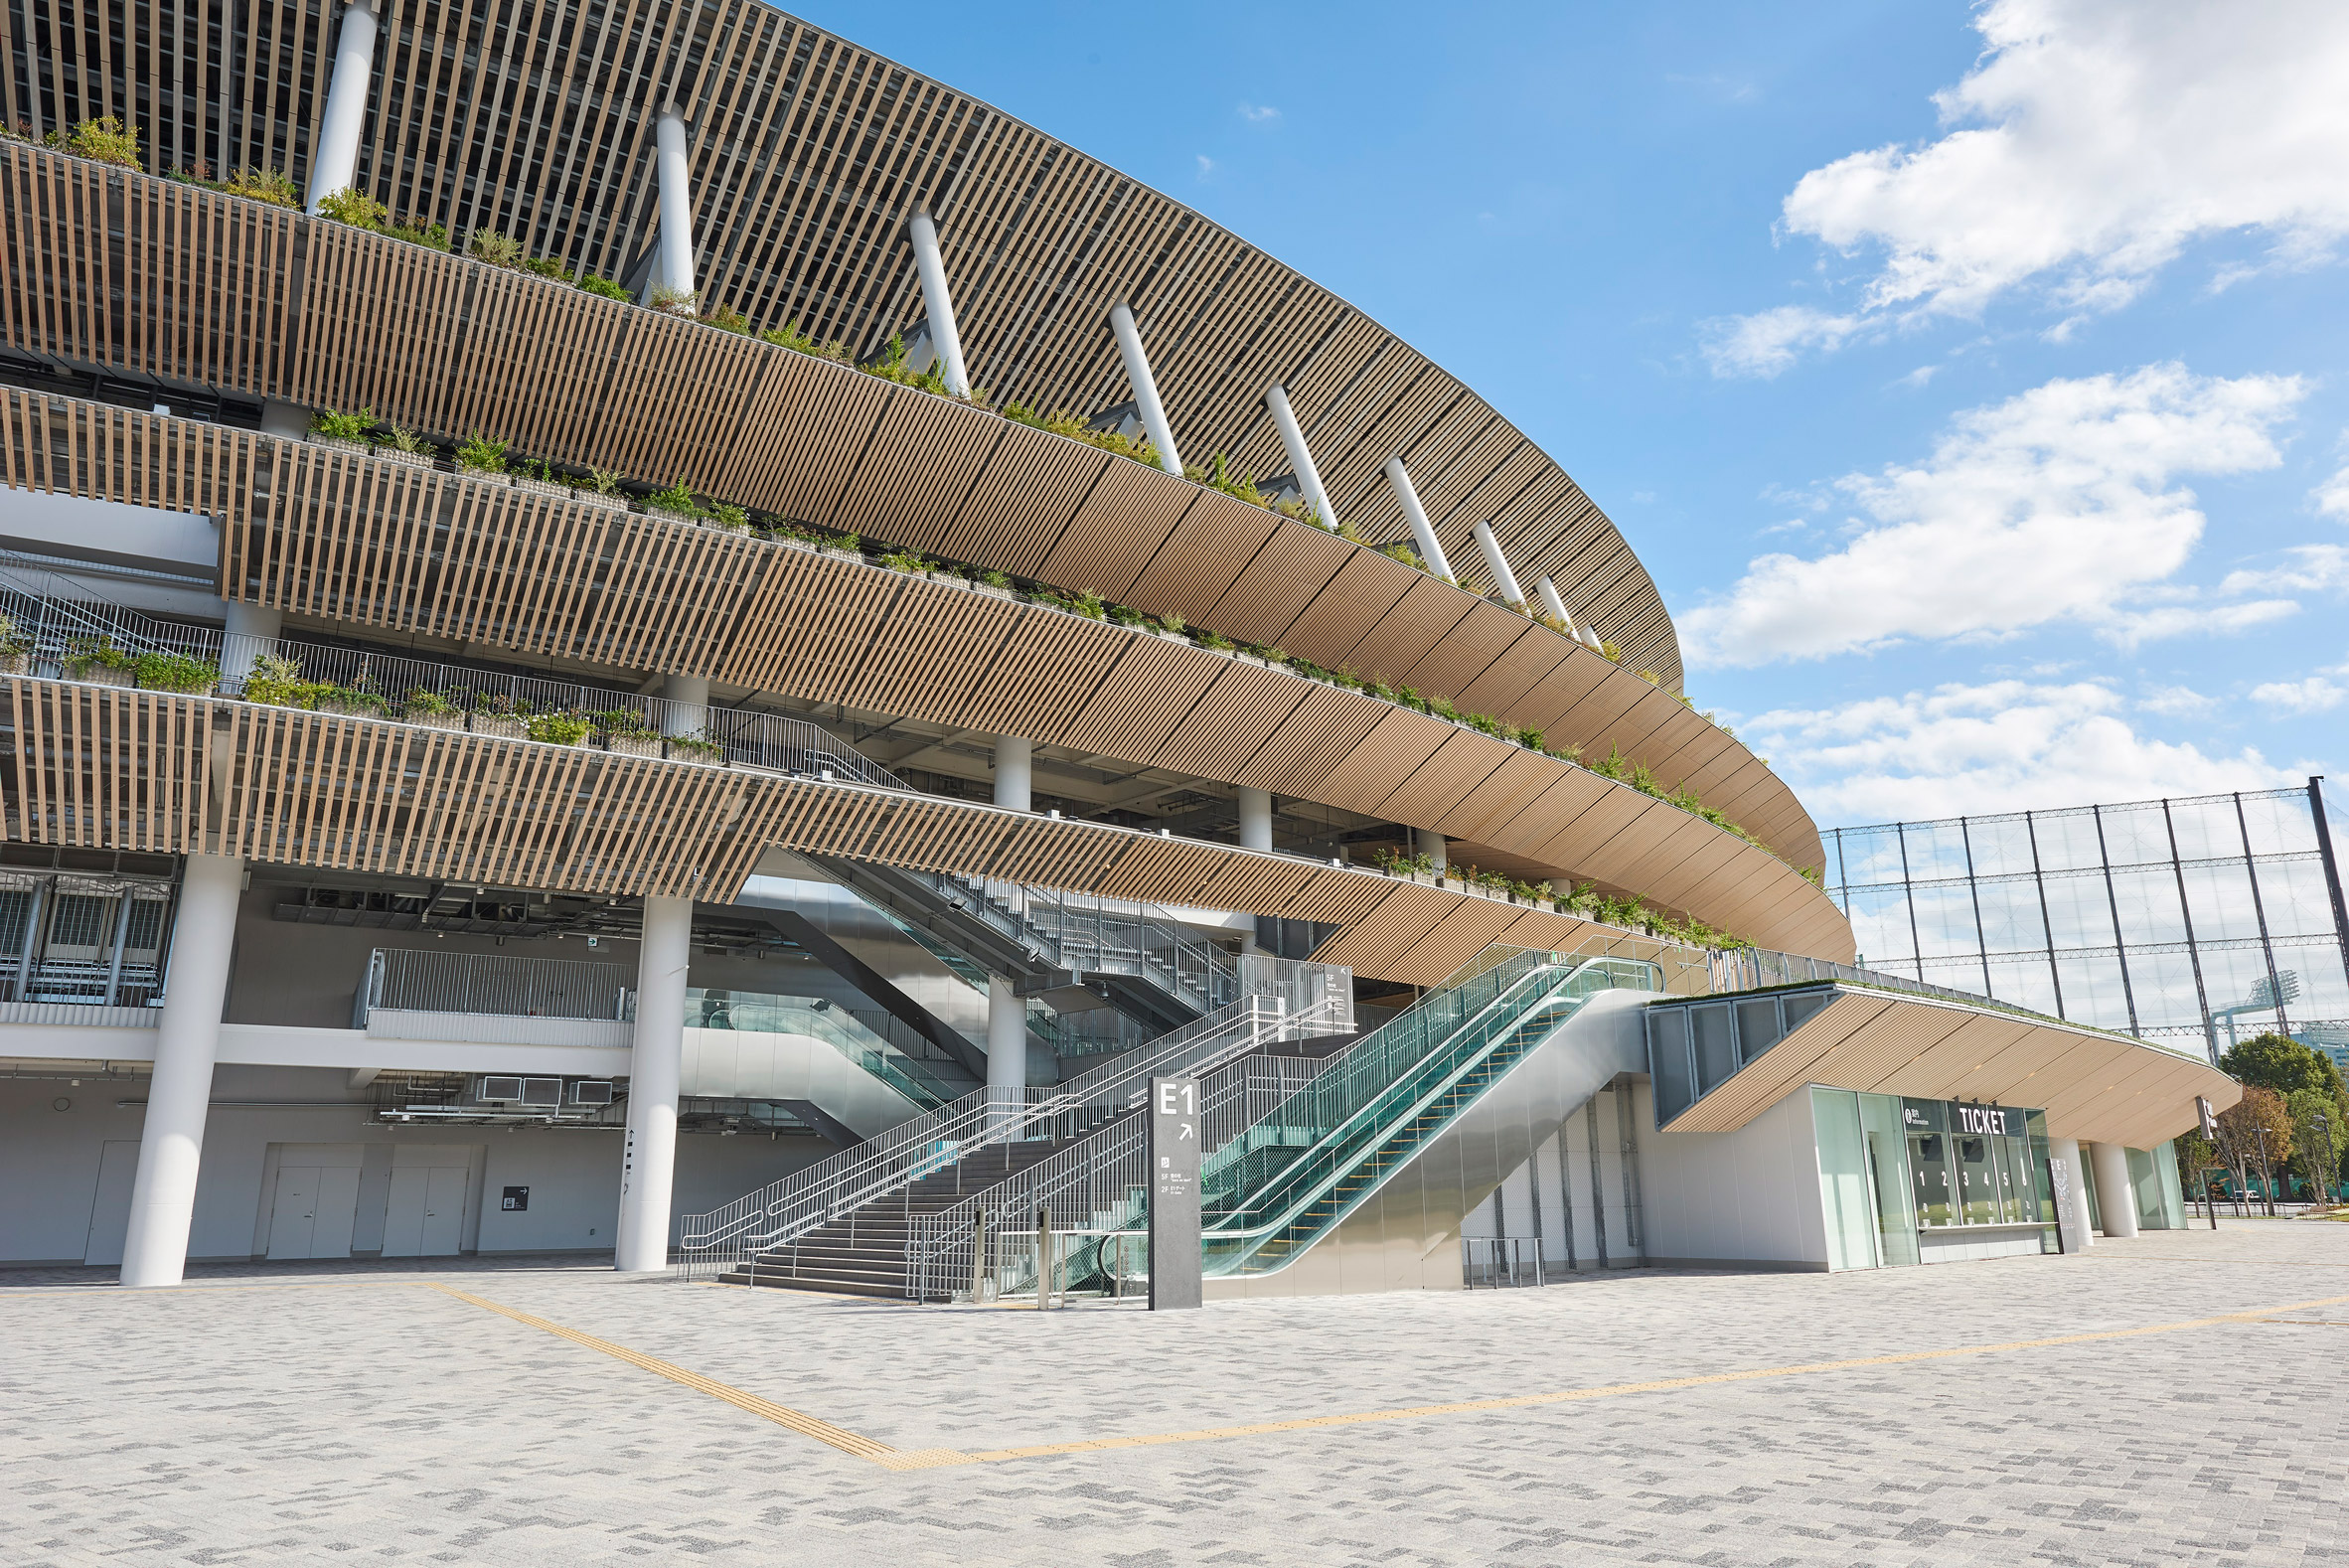 A stadium with wooden cladding